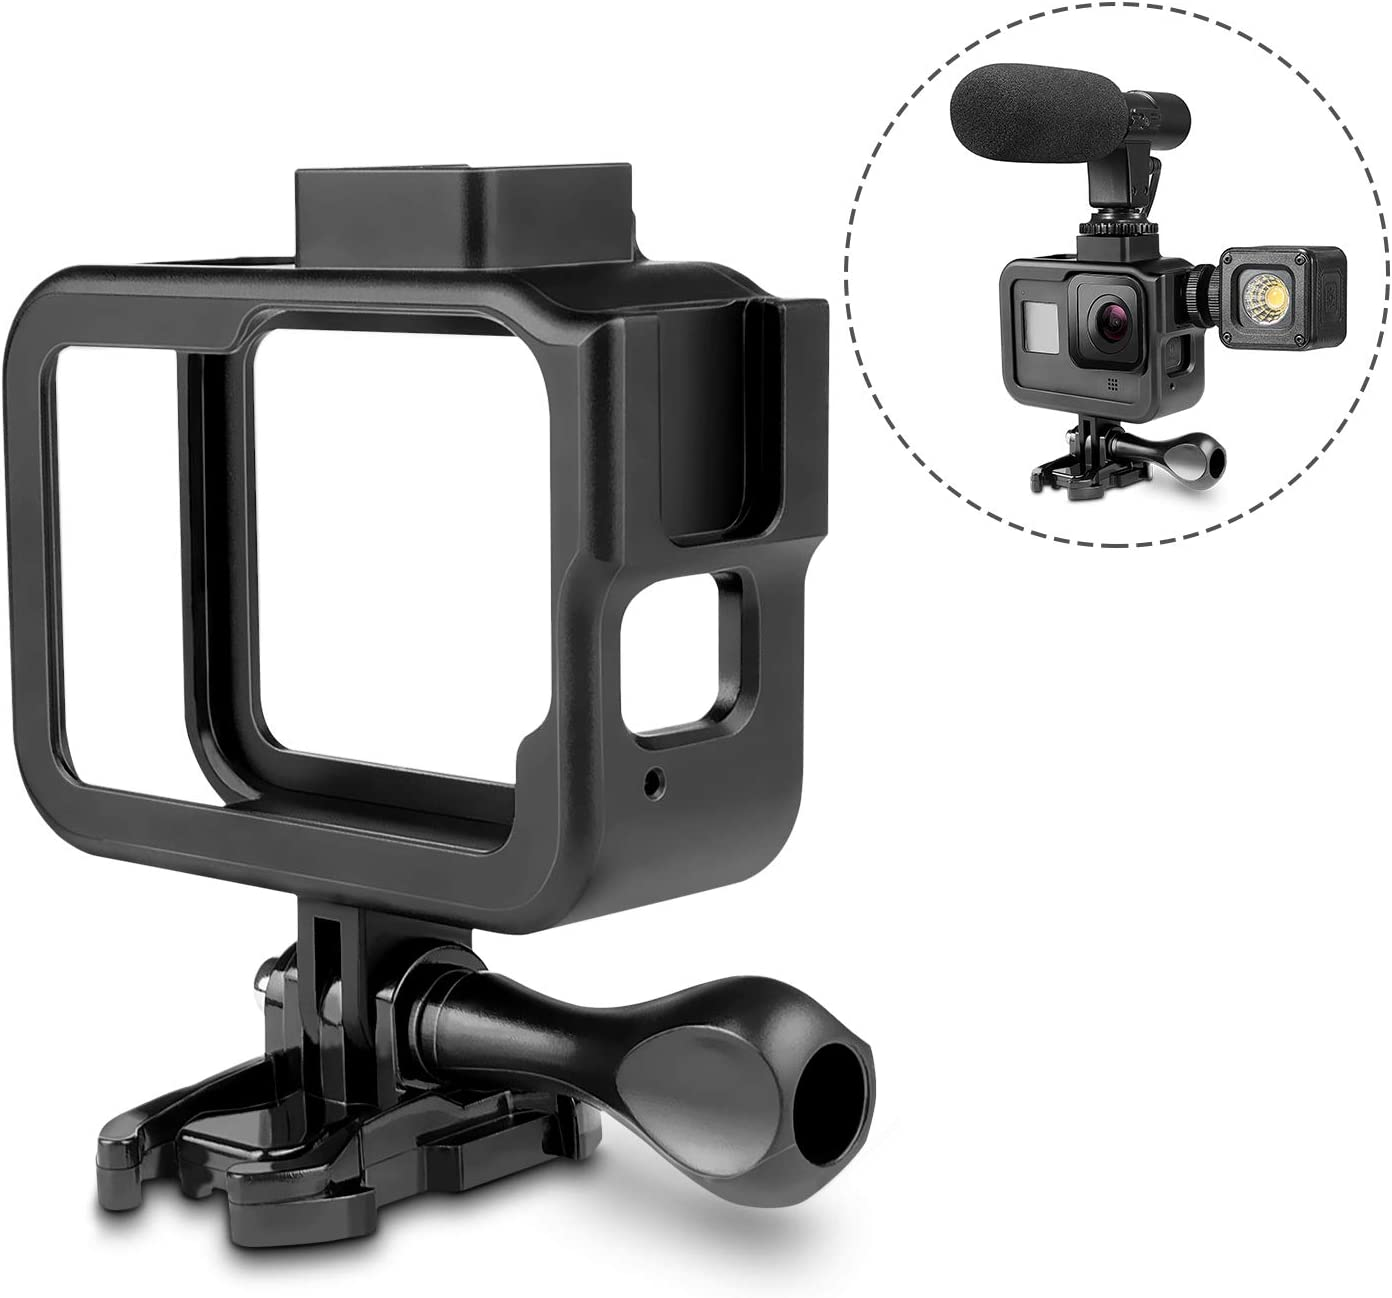 Rhodesy Frame Compatible for Gopro Hero 8 Action Camera Case Aluminum Protective Housing Shell Accessories